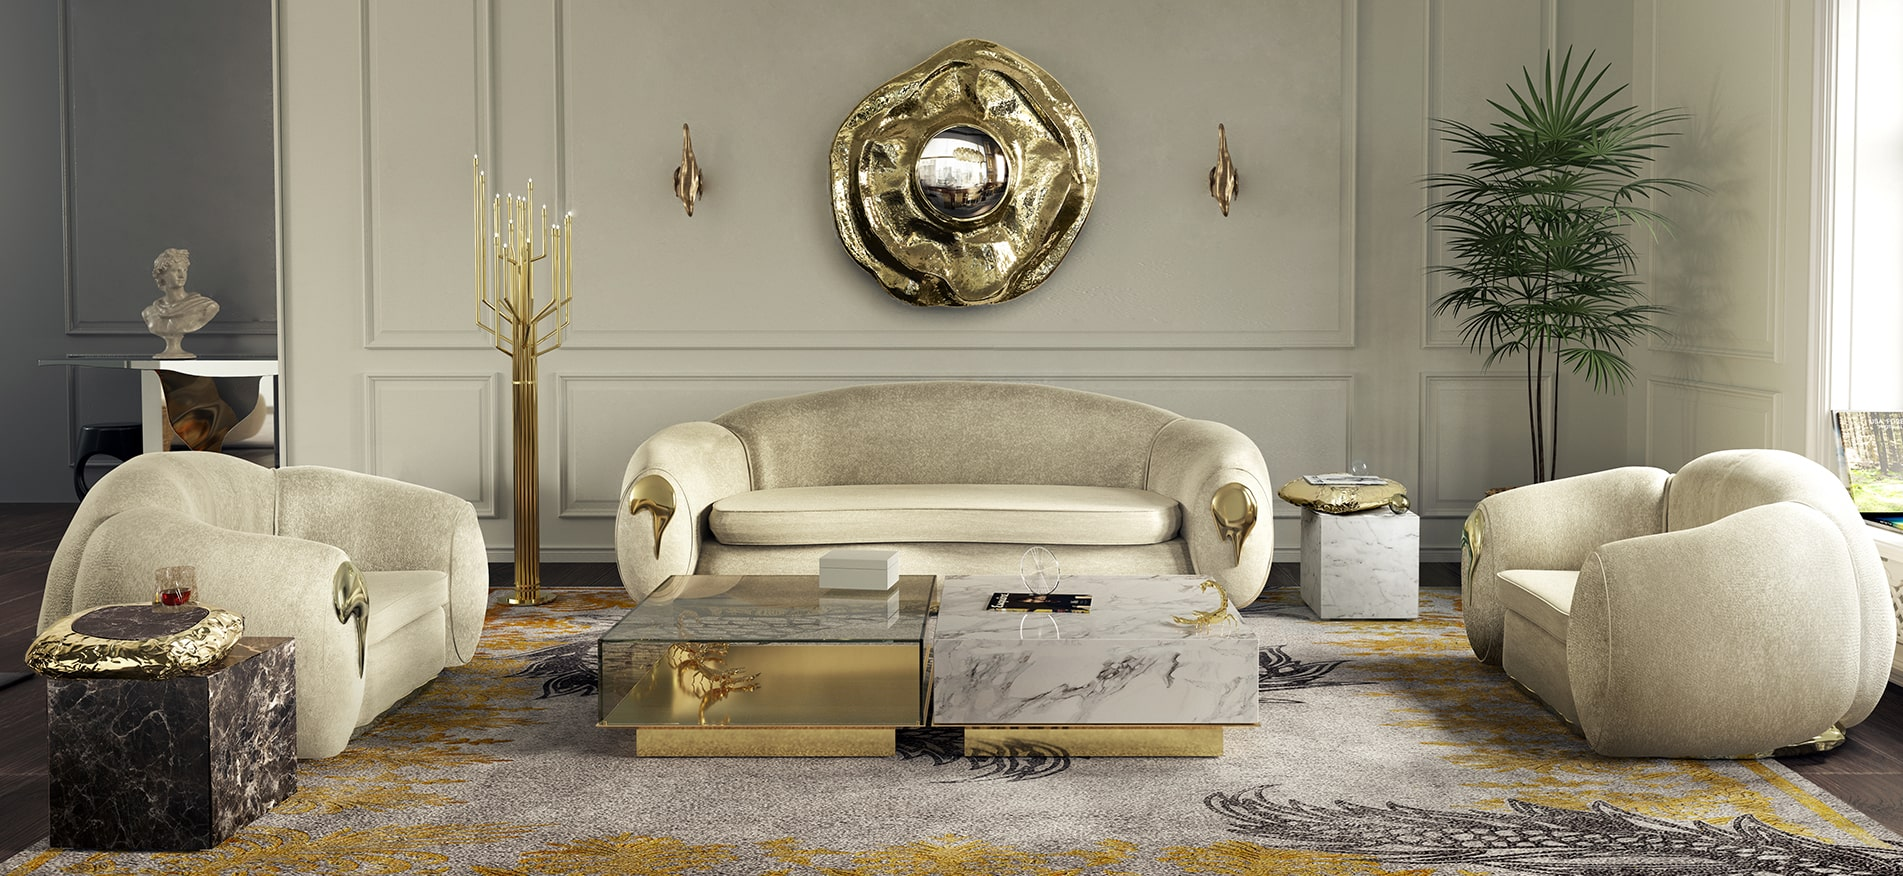 Gold Decor Trends 2020 Insplosion